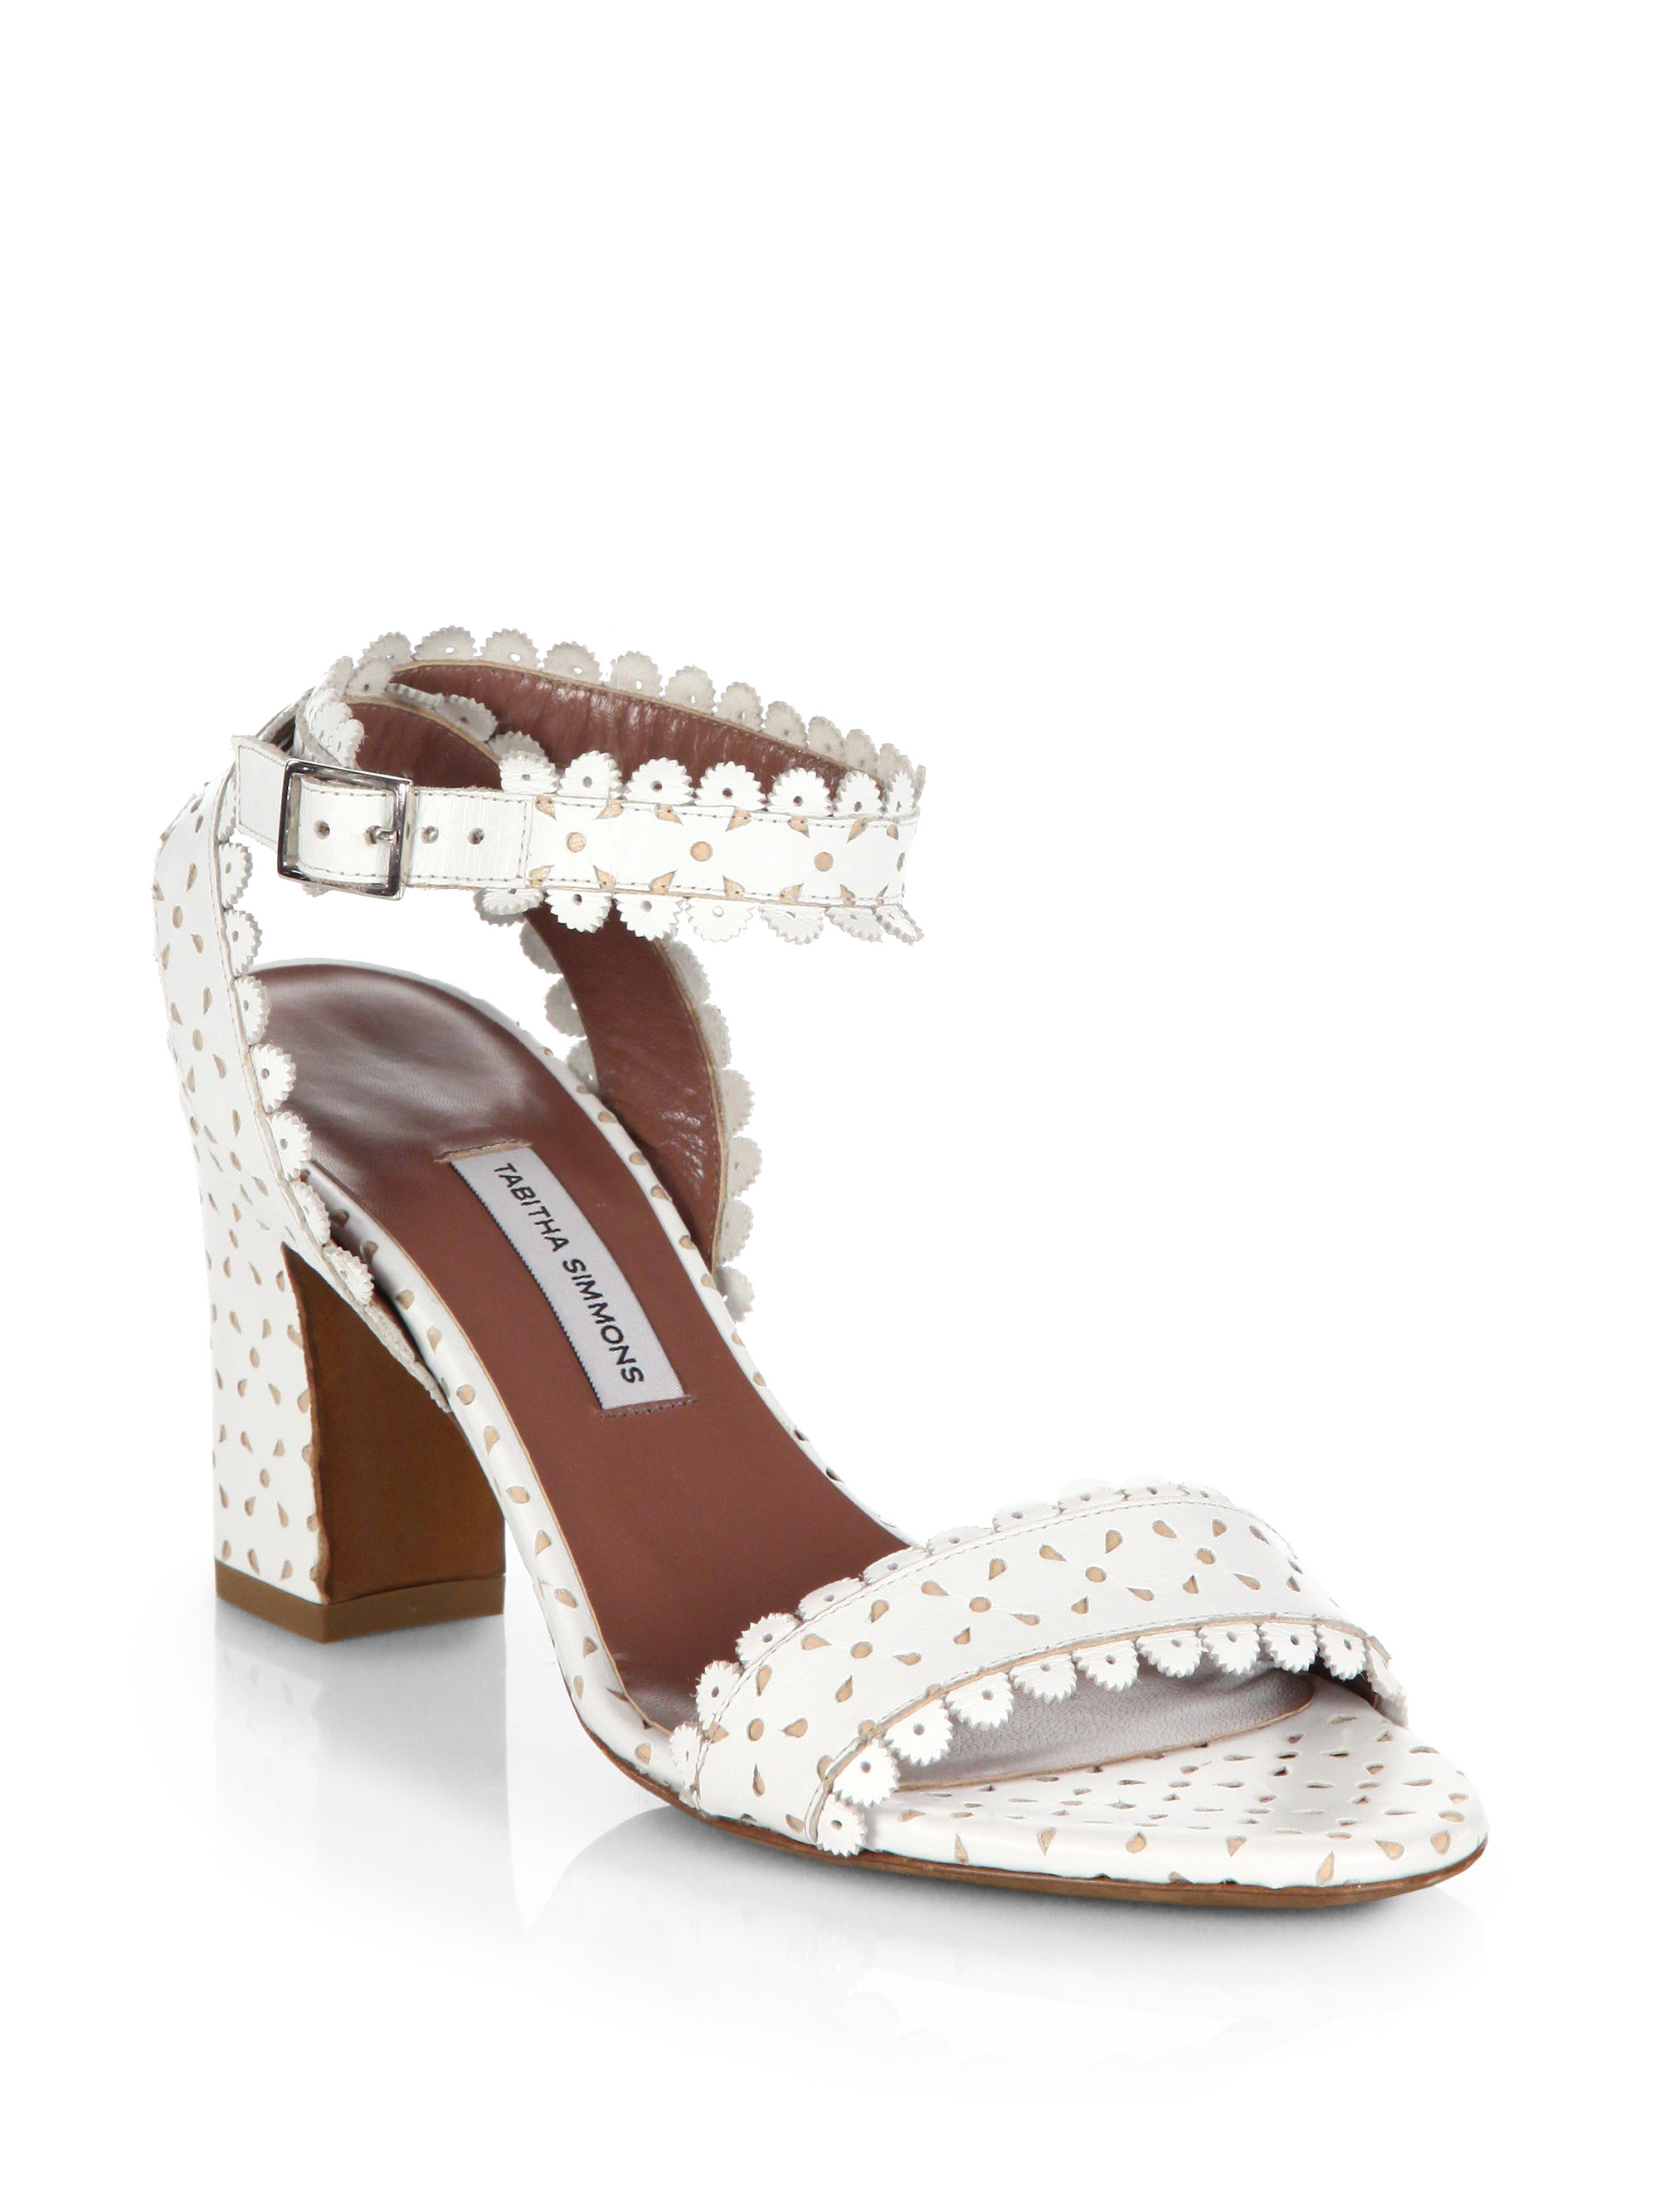 Tabitha Simmons Leticia Perforated Leather Sandals In